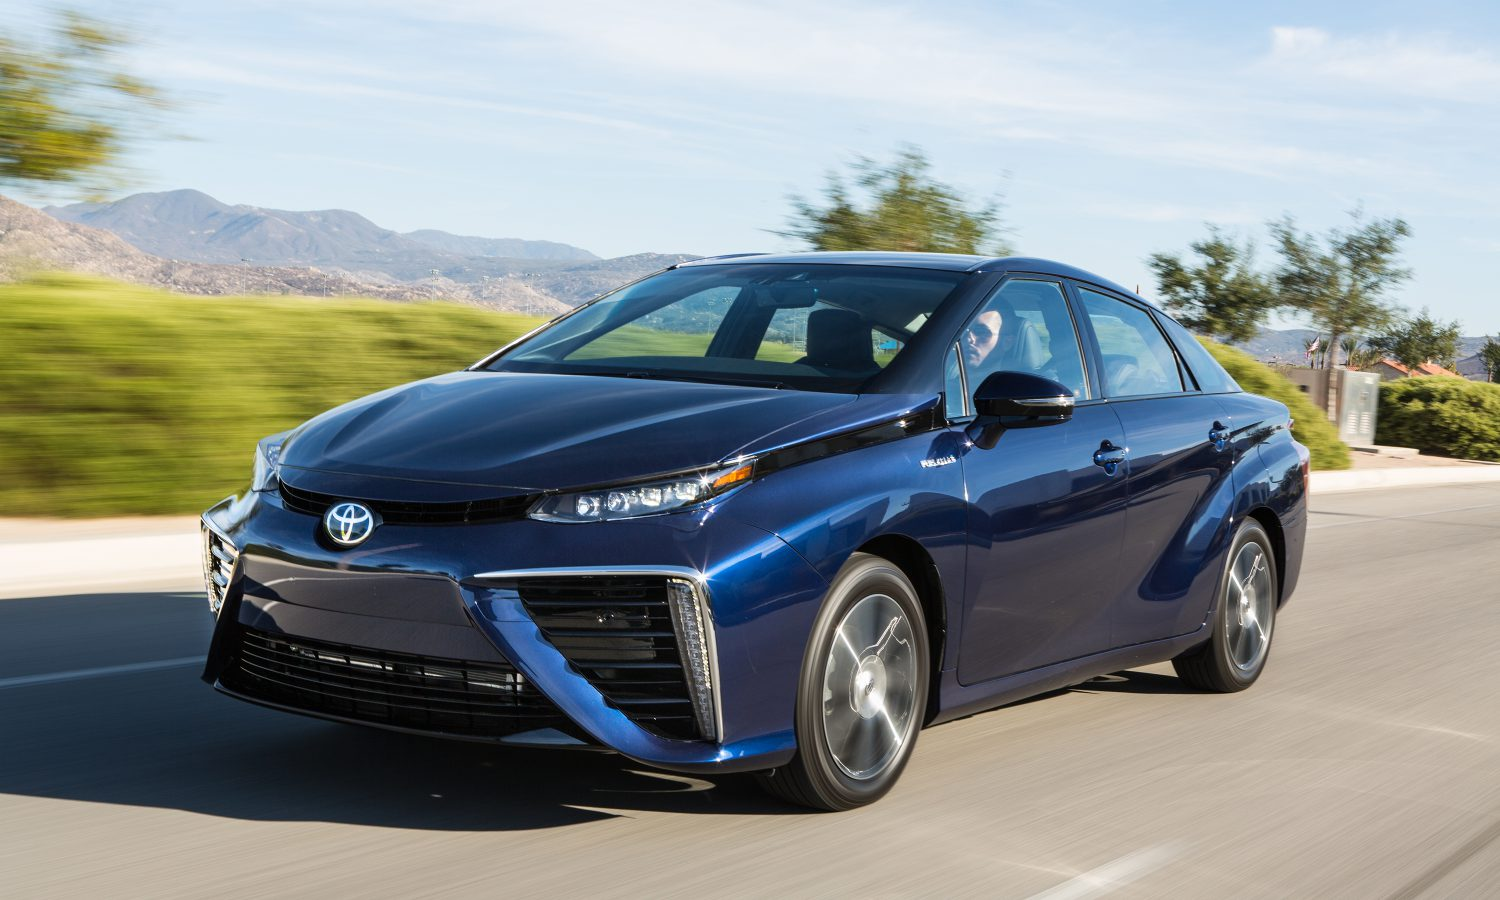 It's Official! Toyota Mirai Goes the Distance